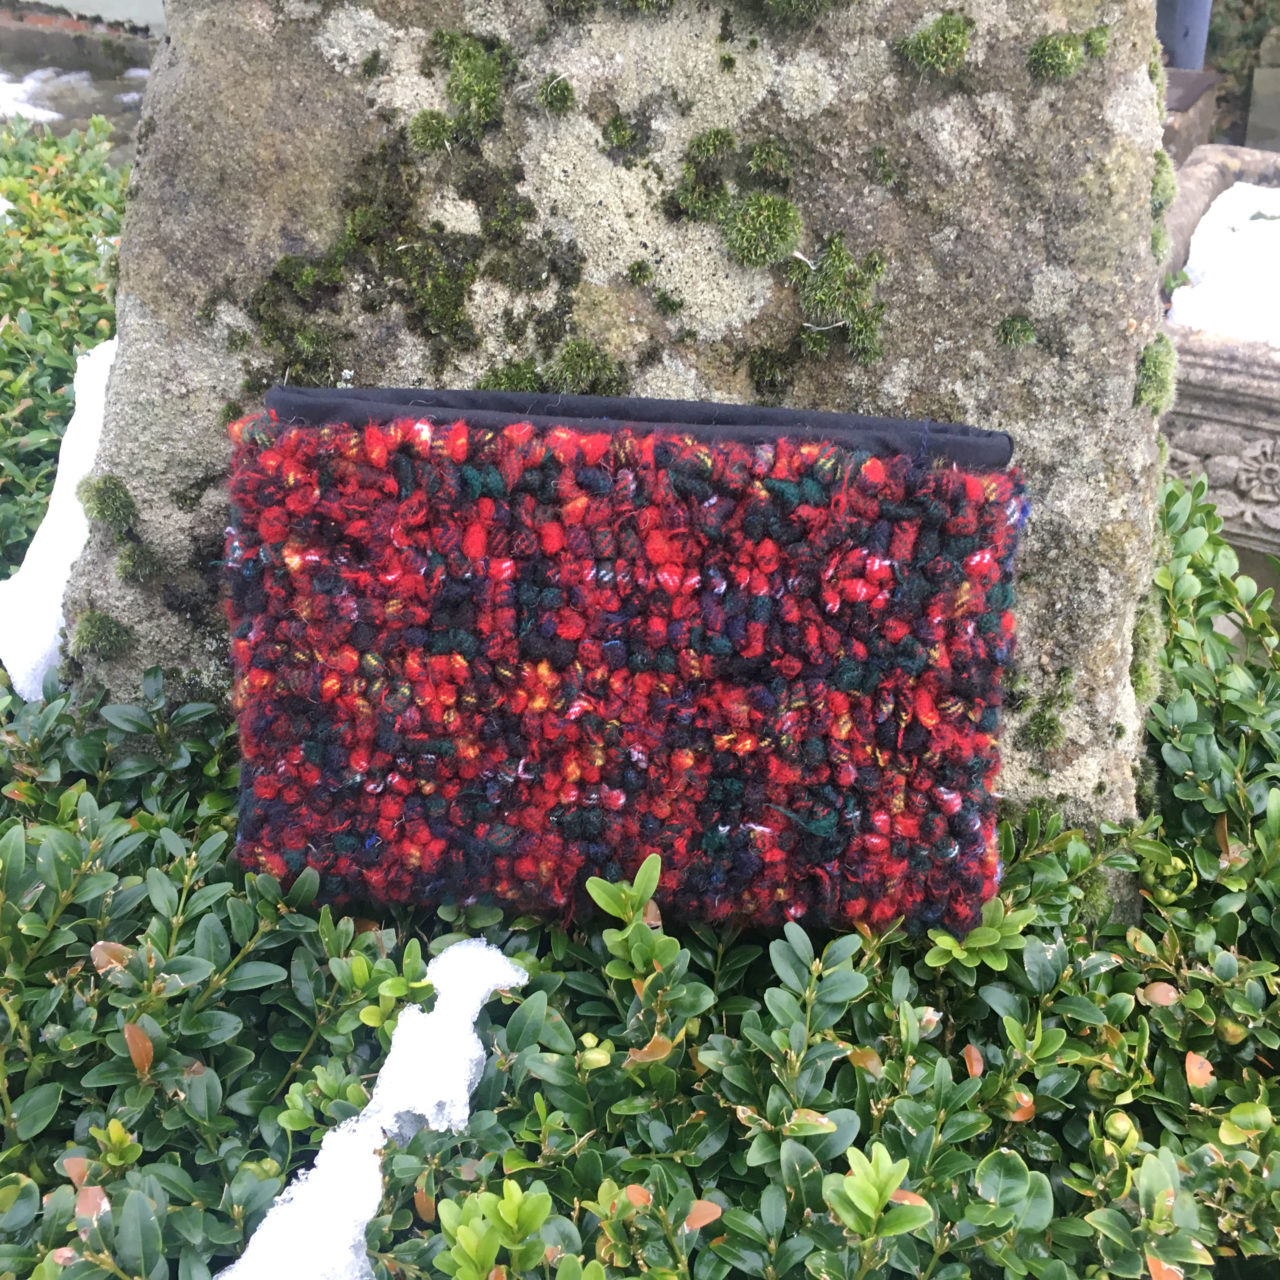 Red tartan loopy rag rugged clutch bag